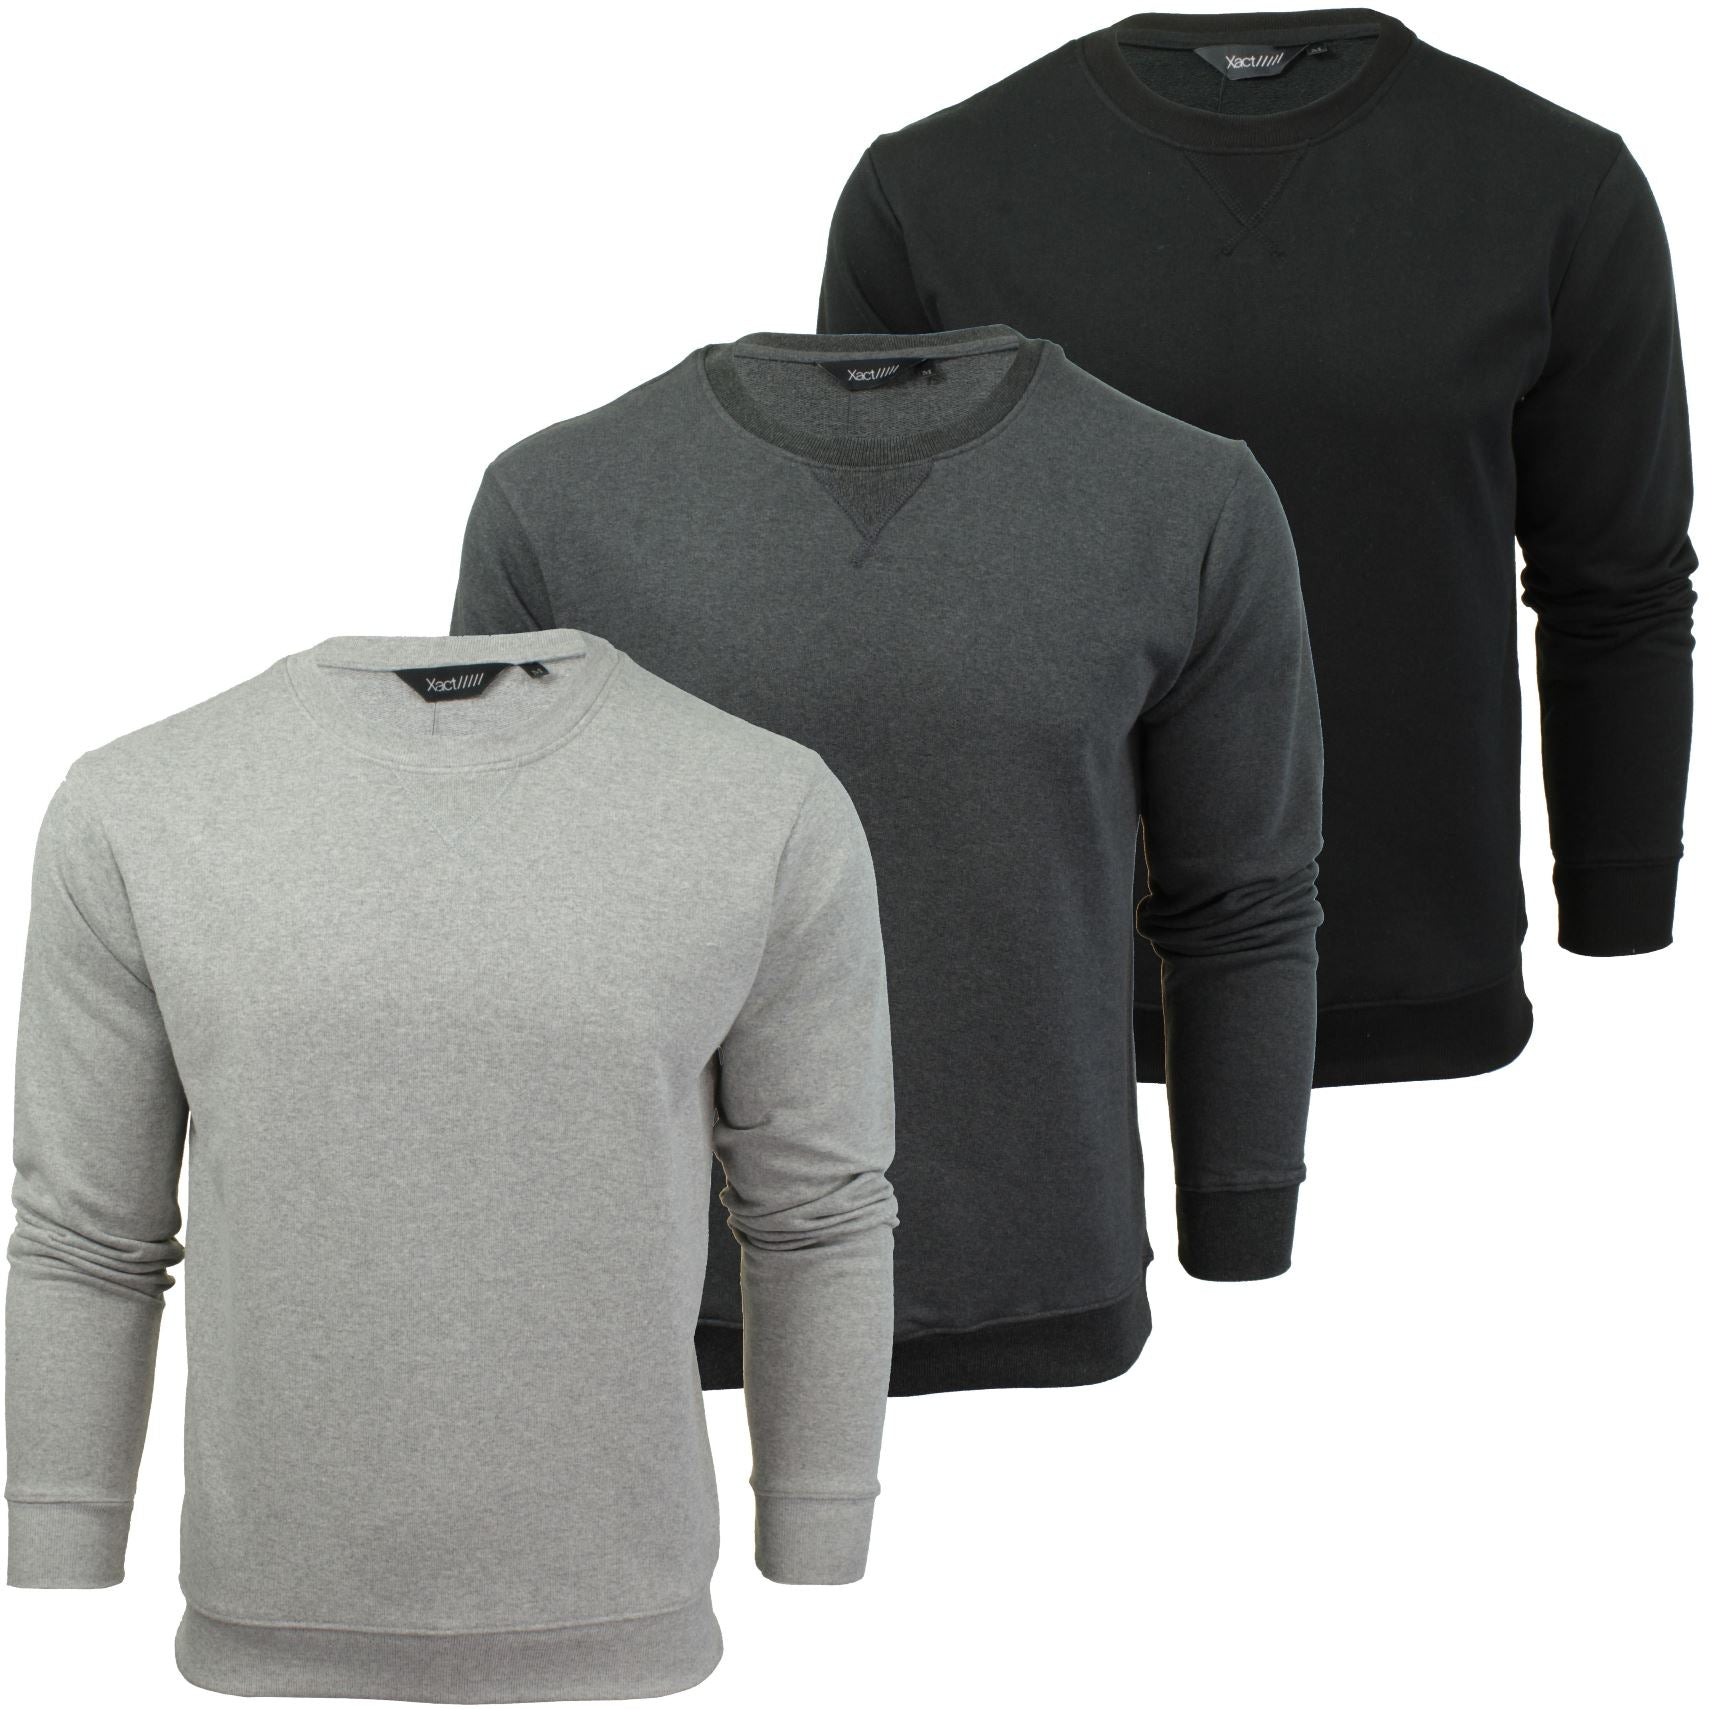 Mens Crew Neck Sweatshirt Jumper by Xact Long Sleeved-Main Image